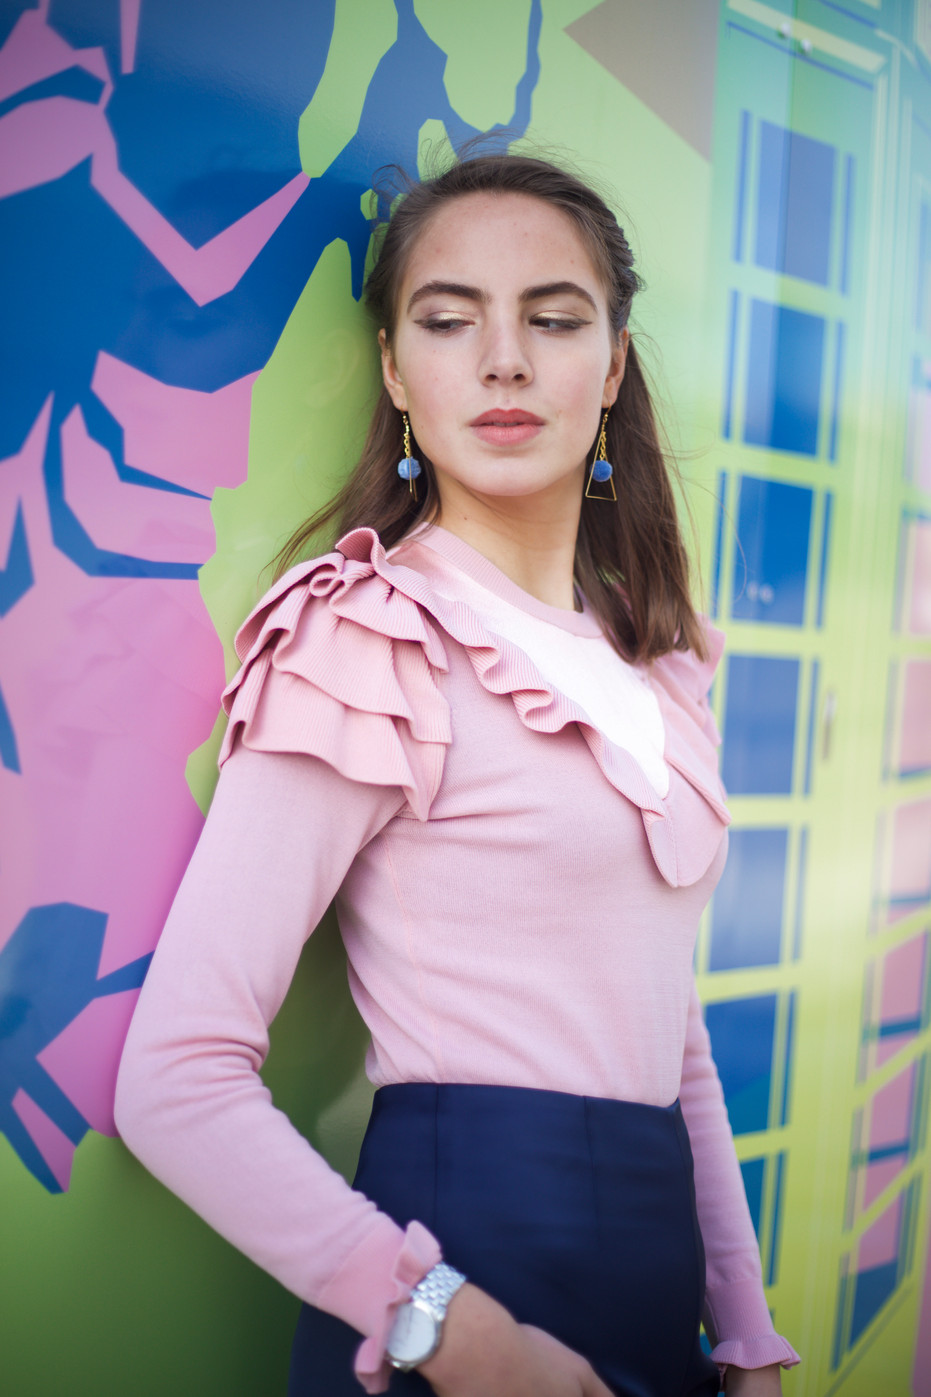 This phototgraphy was created to showcase a new design at Cotton Crowd. In this shoot I aimed to create a refreshing piece of work with a youthful and imaginative aesthetic.   Model: Marina Cappatina